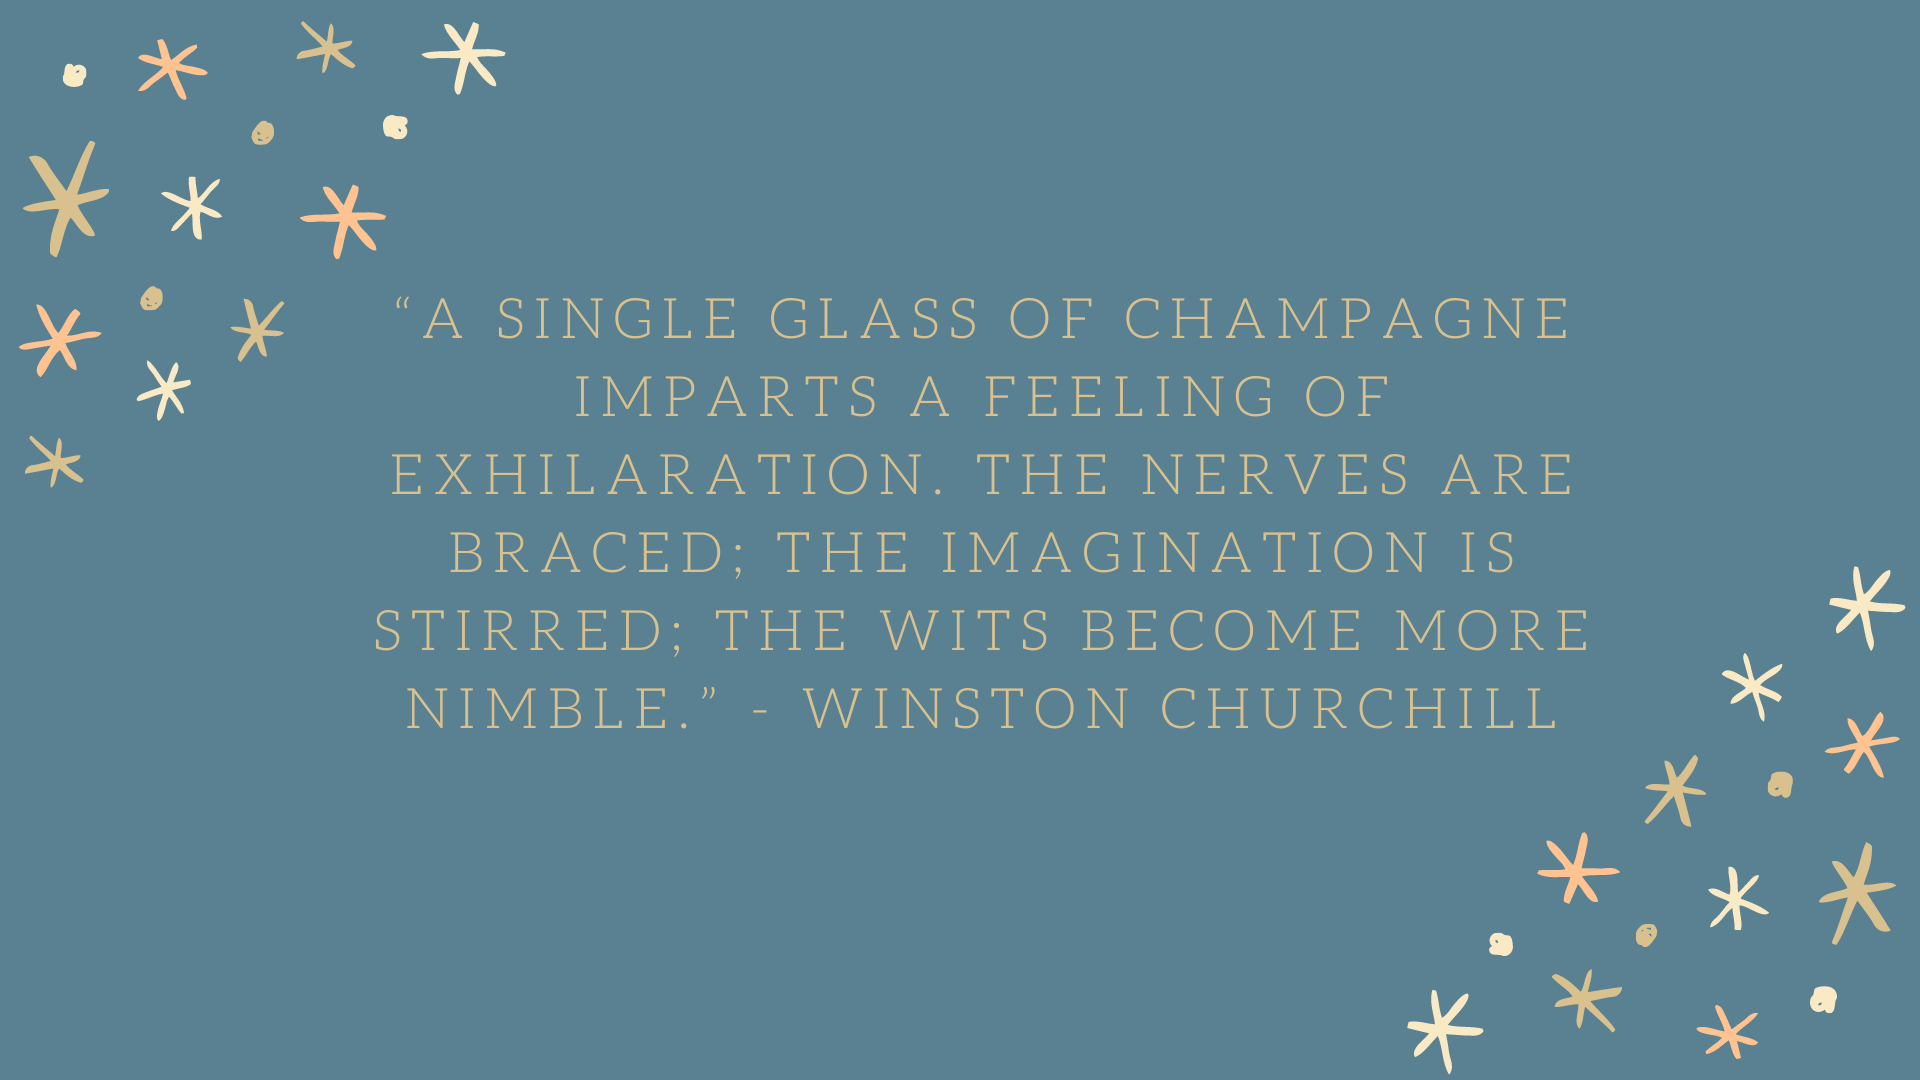 """A single glass of champagne imparts a feeling of exhilaration. The nerves are braced; the imagination is stirred; the wits become more nimble."" - Winston Churchill"